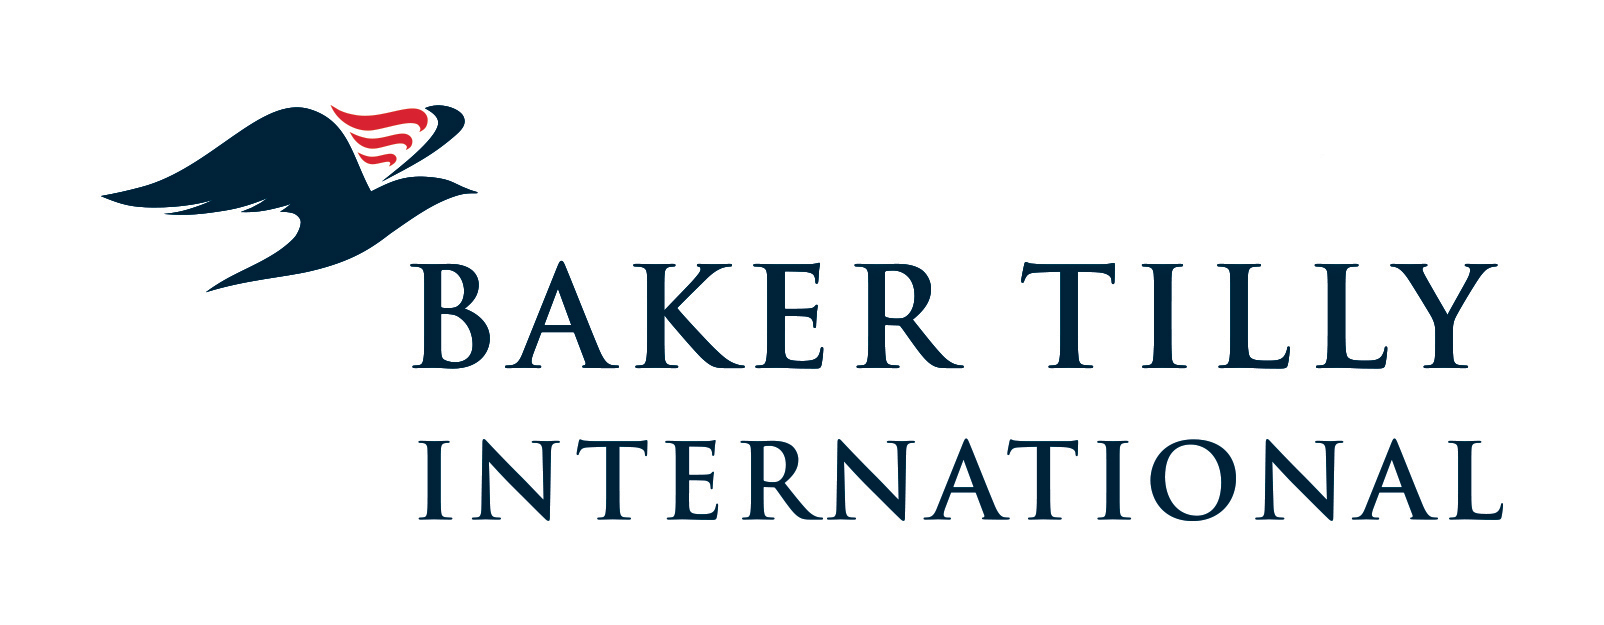 baker tilly iinternational